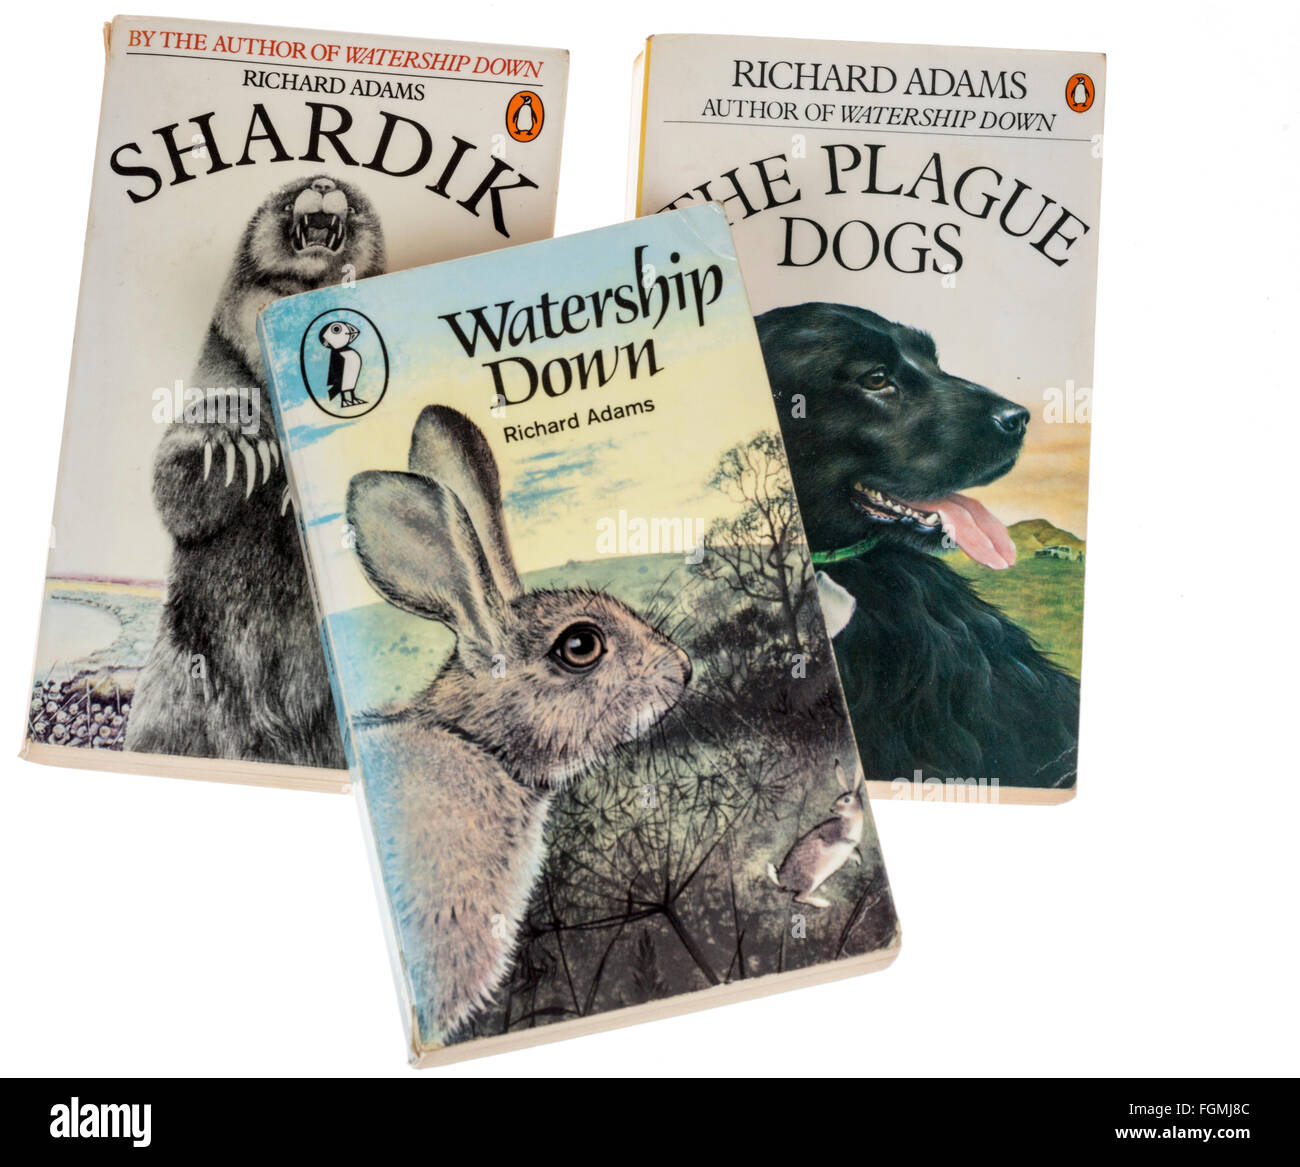 Books by Richard Adams published in paperback by Puffin, Shardik, Watership Down and The Plague Dogs - Stock Image